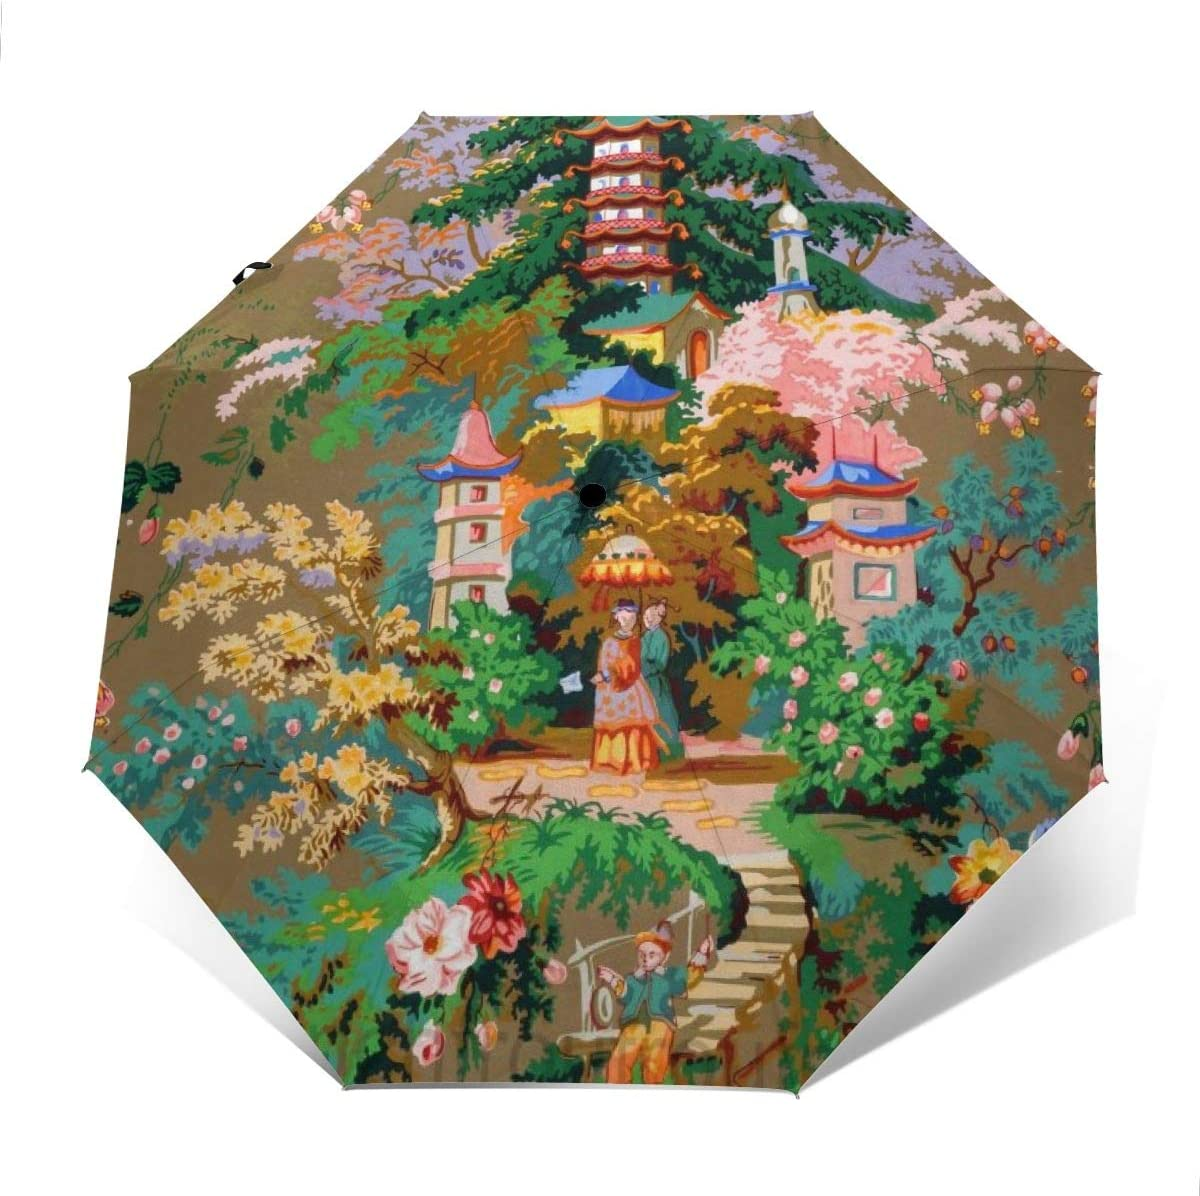 Chinoiserie Pagoda Couples Flowers Sun Umbrella Compact Folding Travel Umbrella Auto Open And Close For Windproof Rainproof UV Protection Parasol